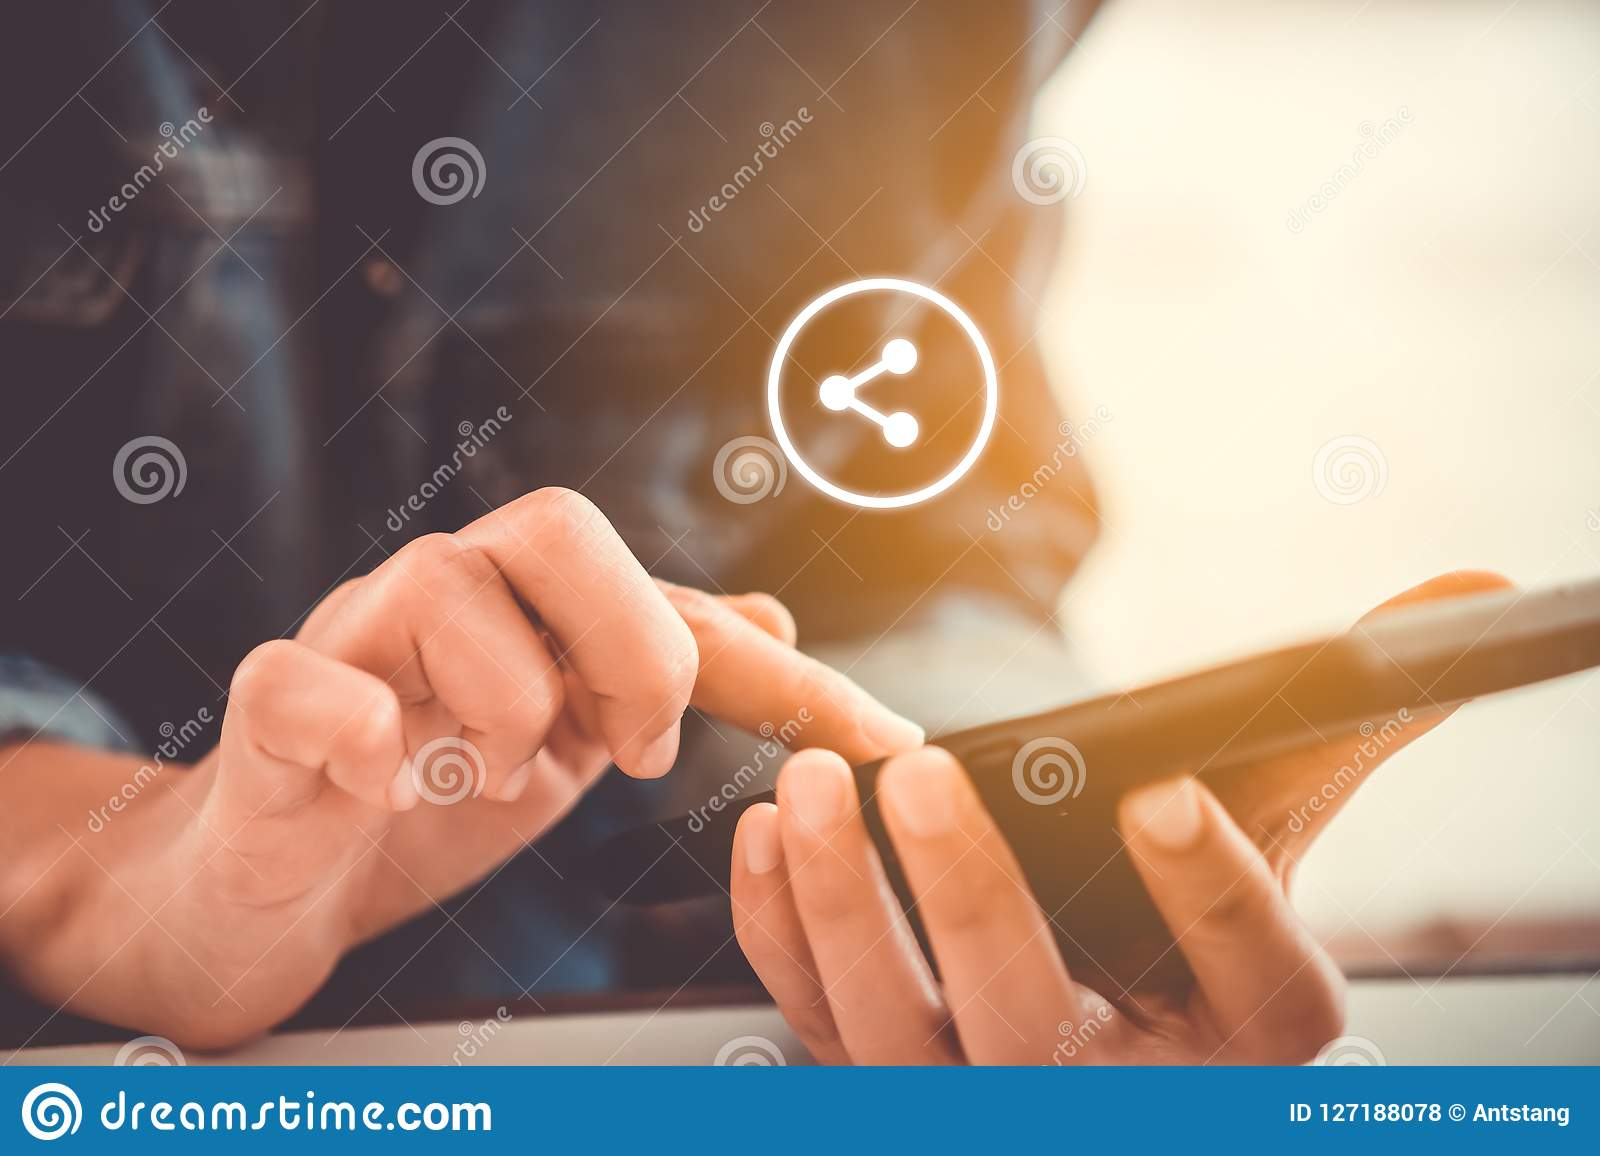 Woman hand using smartphone with share icon.